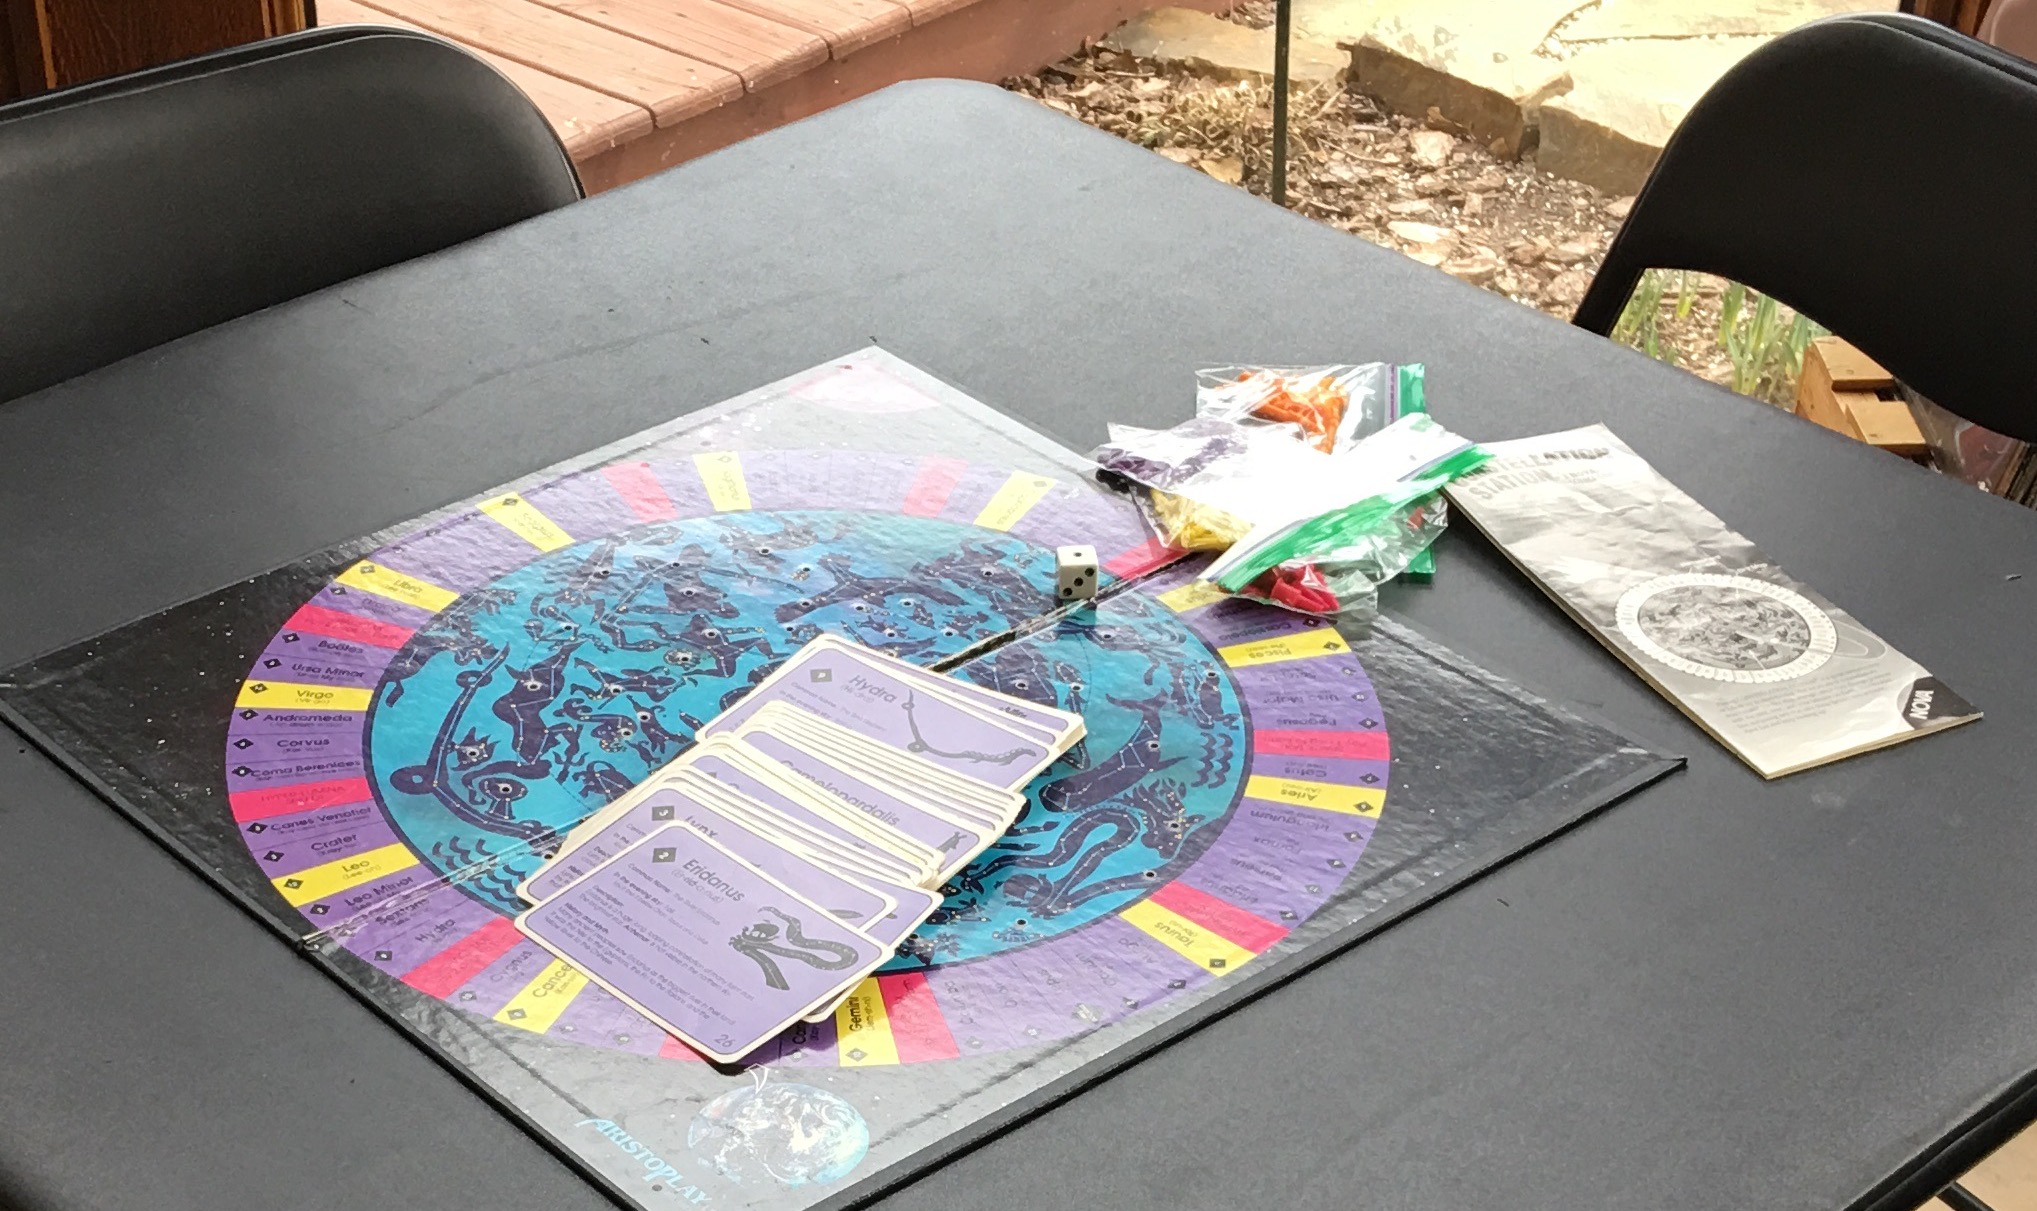 Constellation Station board game